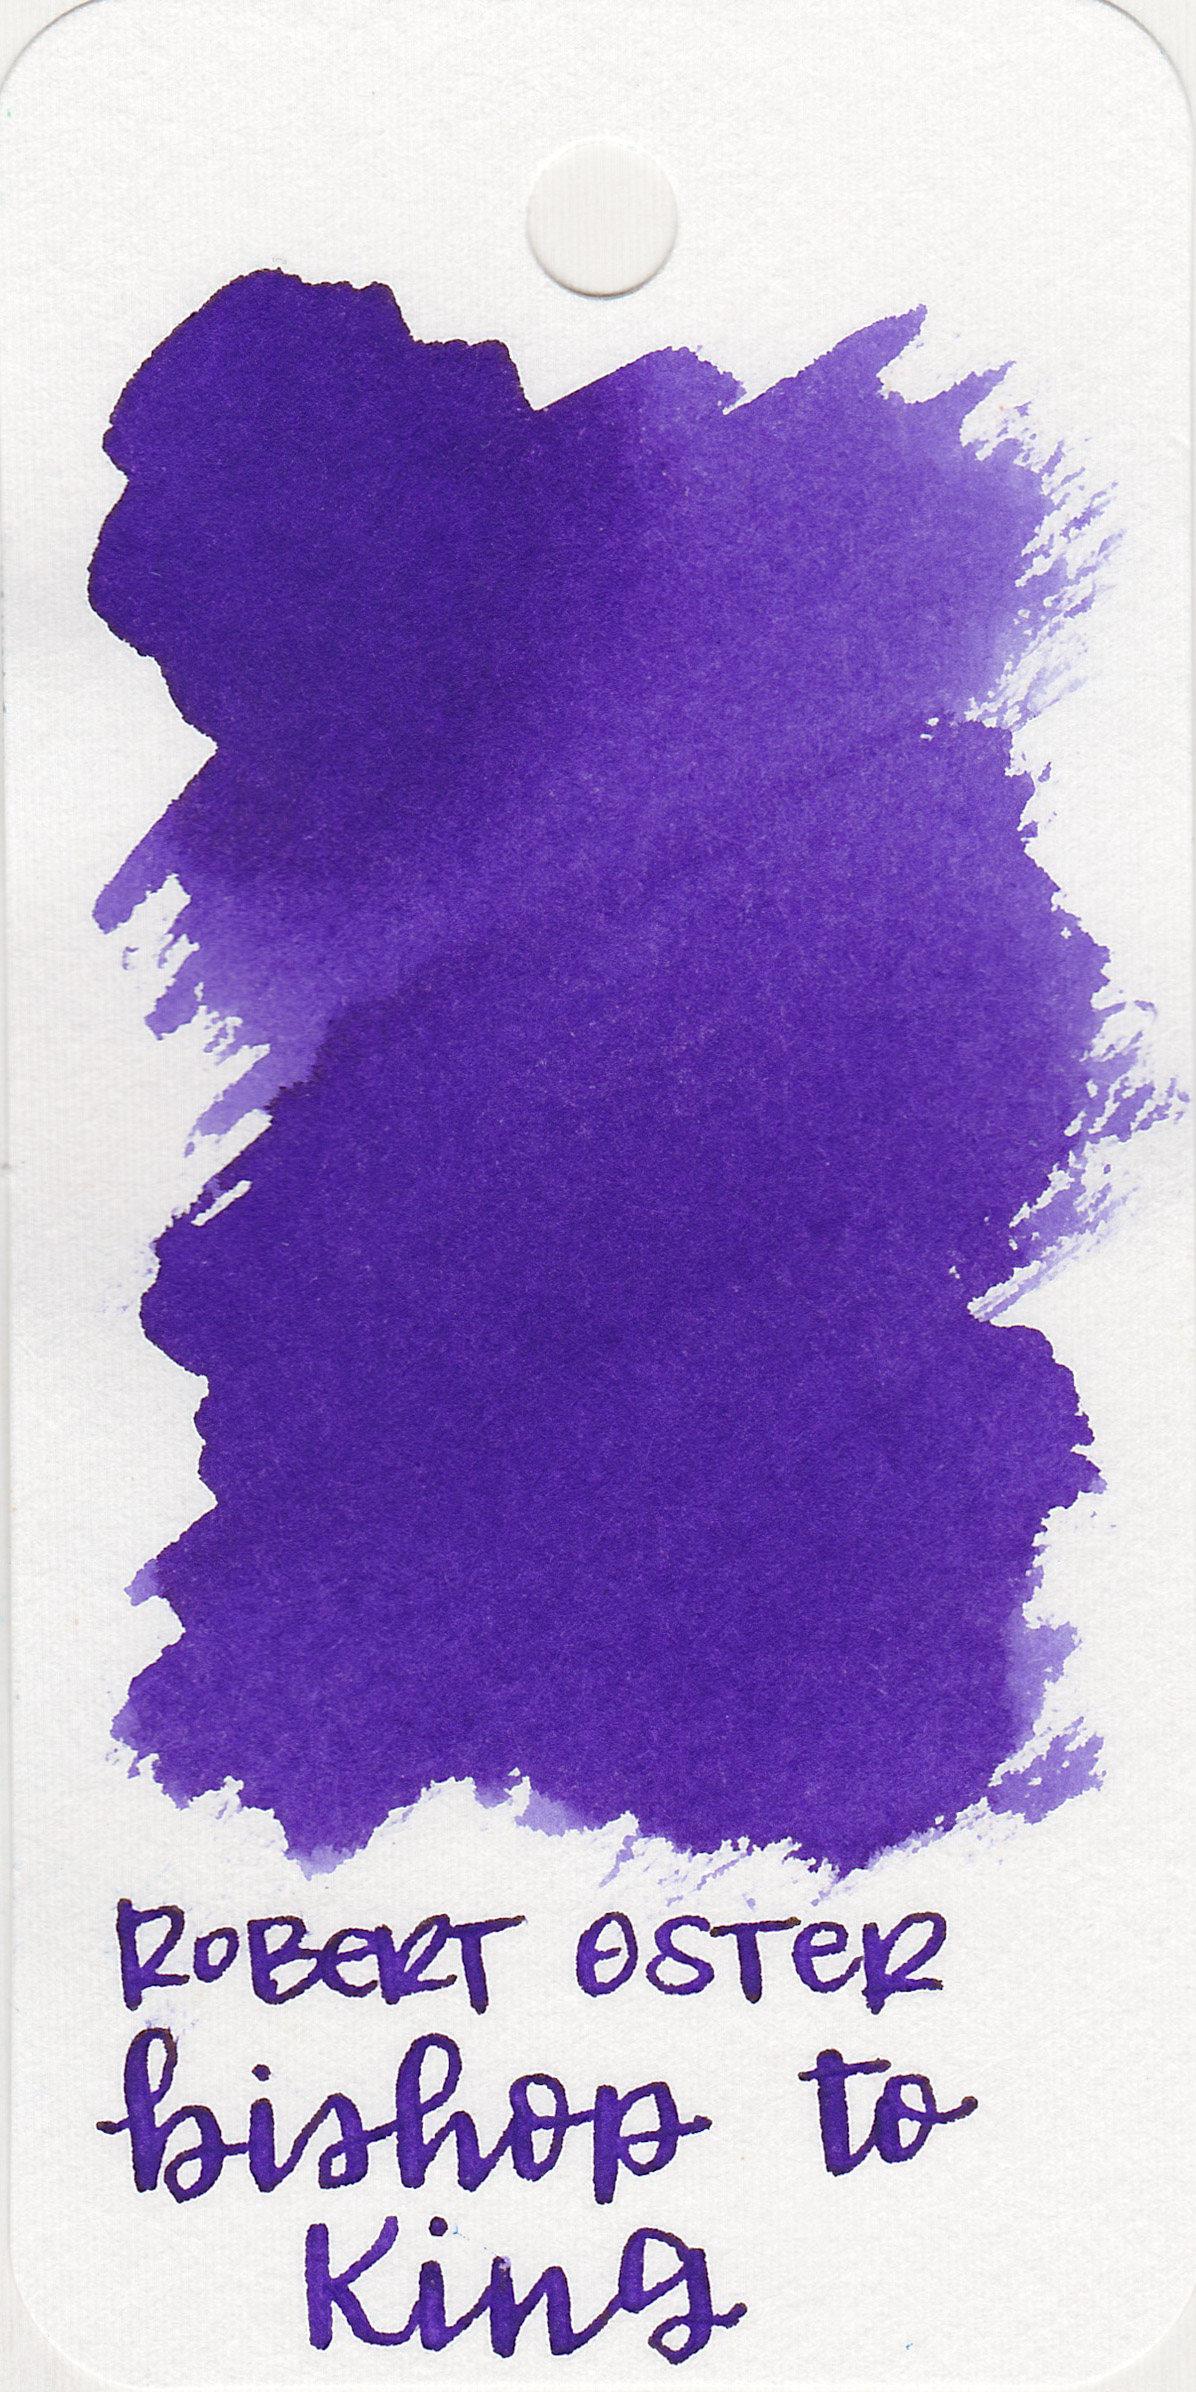 The color: - Bishop to King is a dark but vibrant purple.